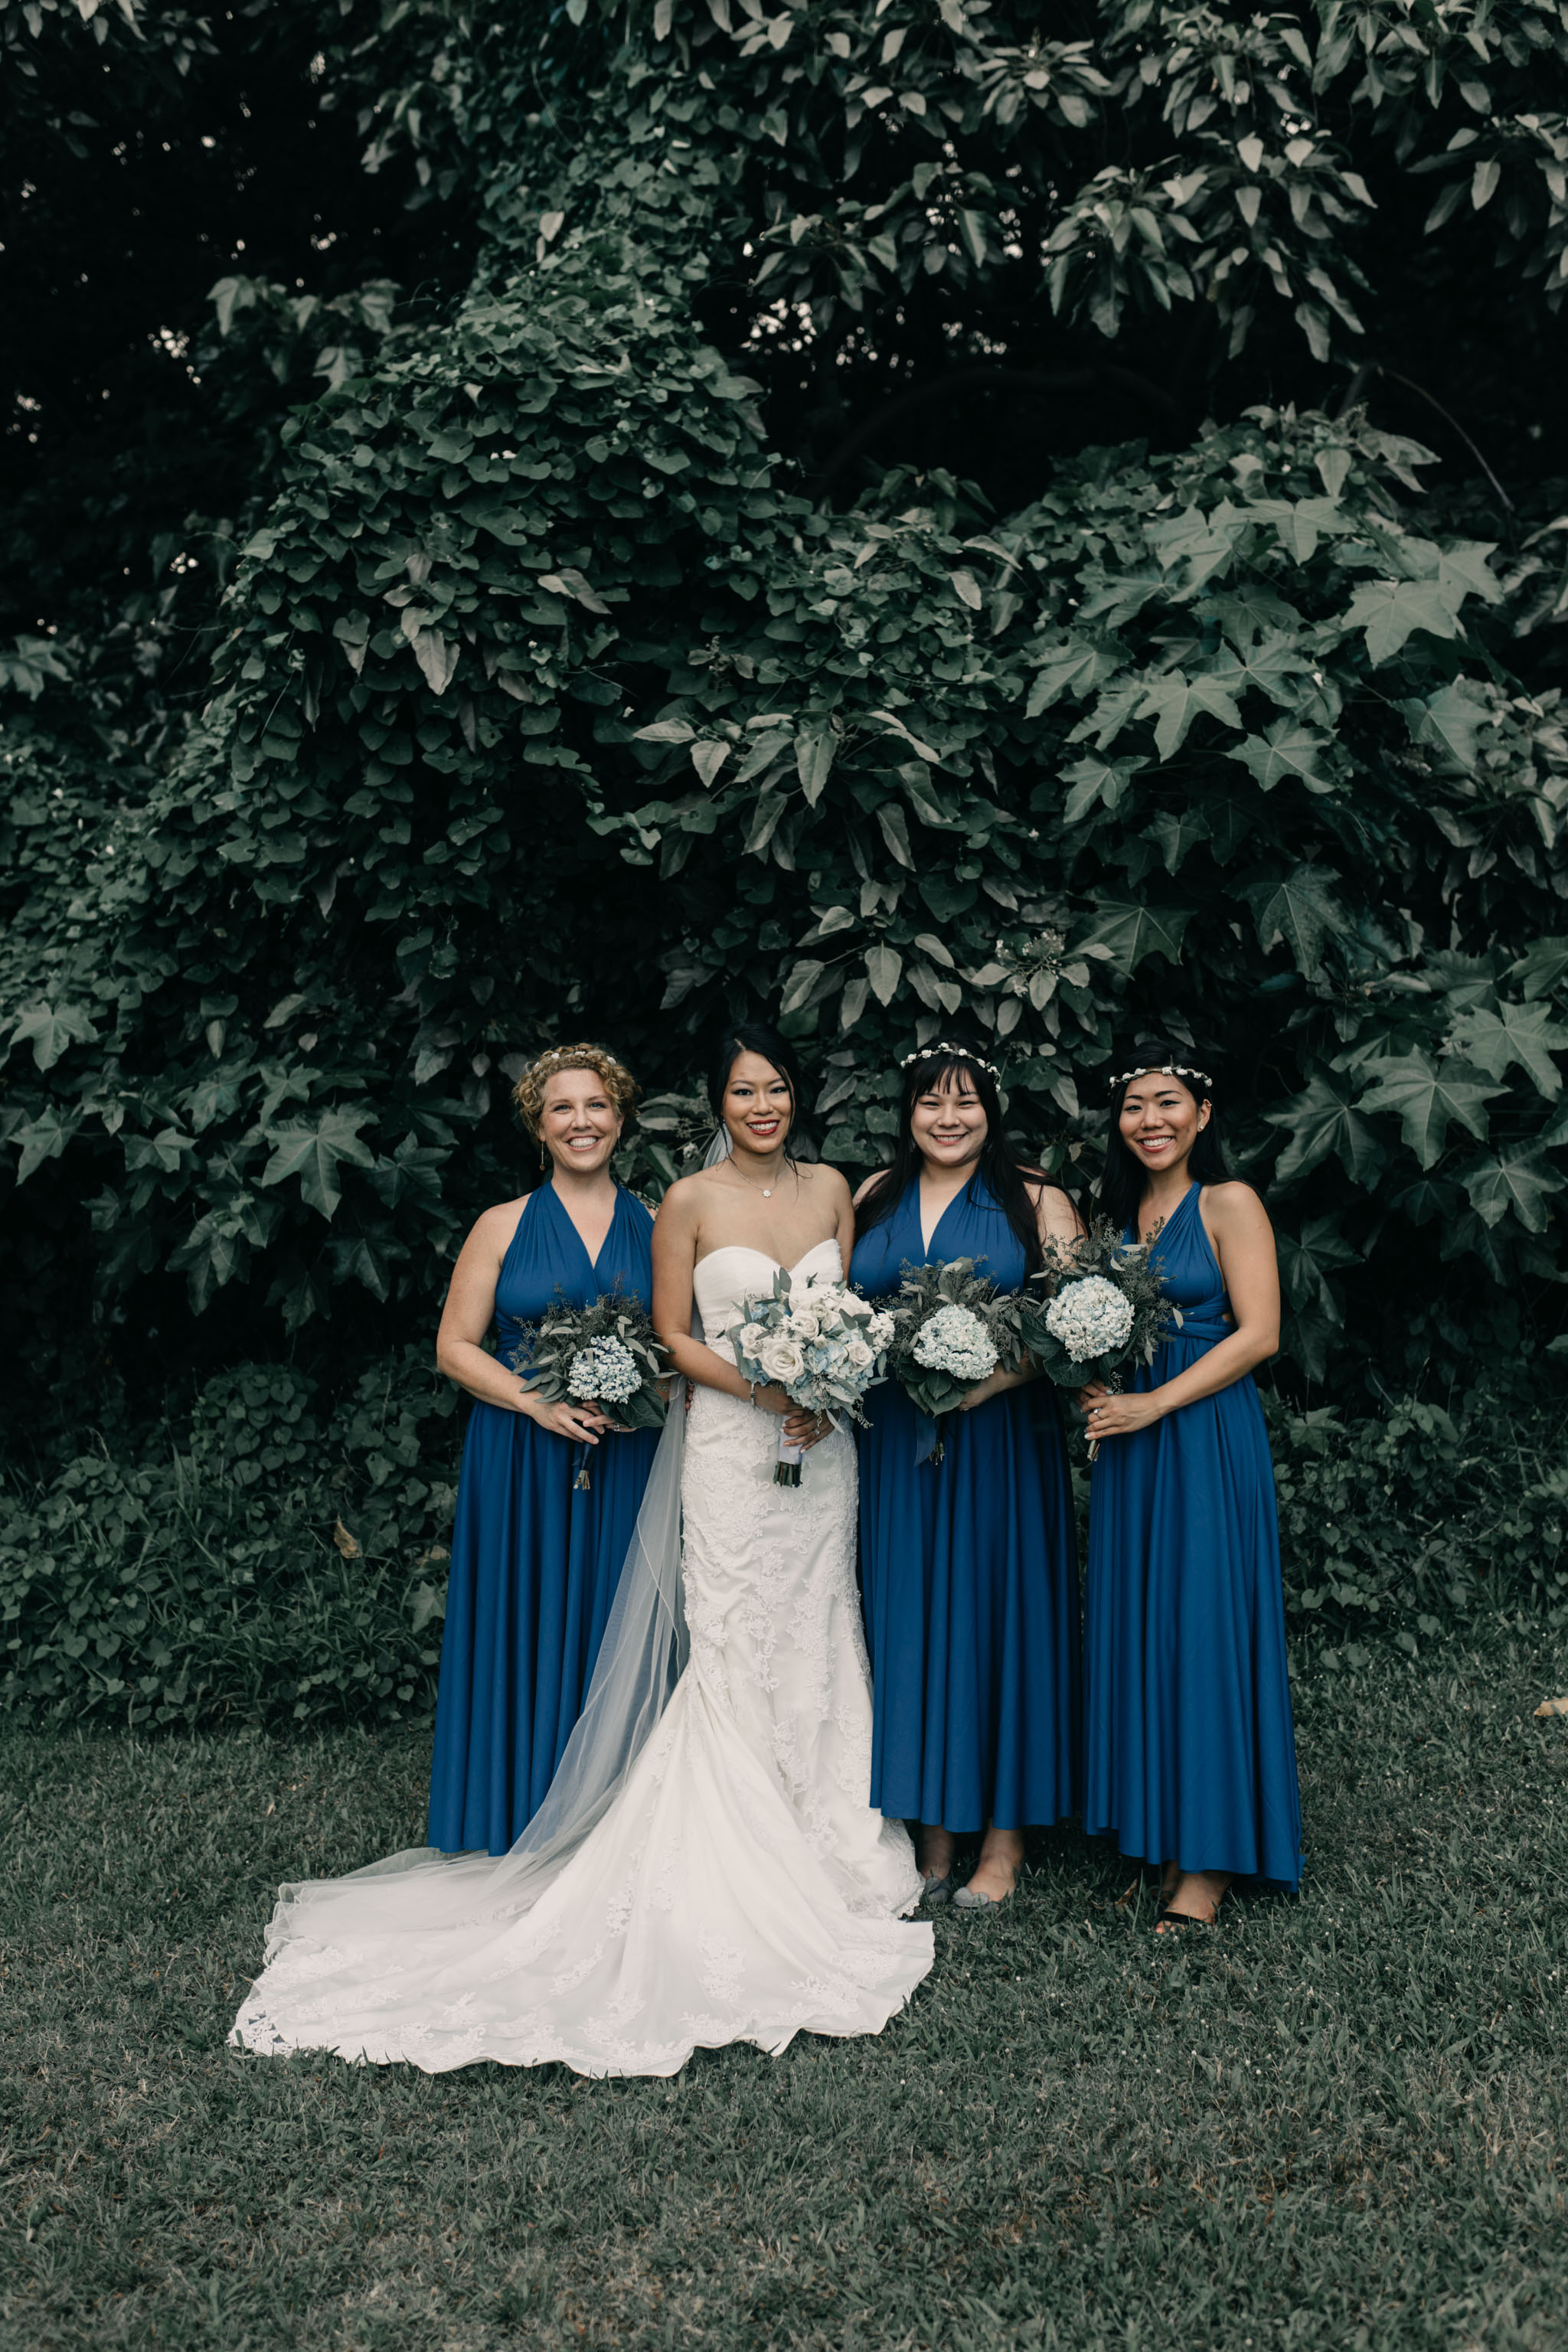 Blue bridesmaids dresses at Kualoa Ranch Paliku Gardens. Photography by Hawaii fine art wedding photographer Desiree Leilani